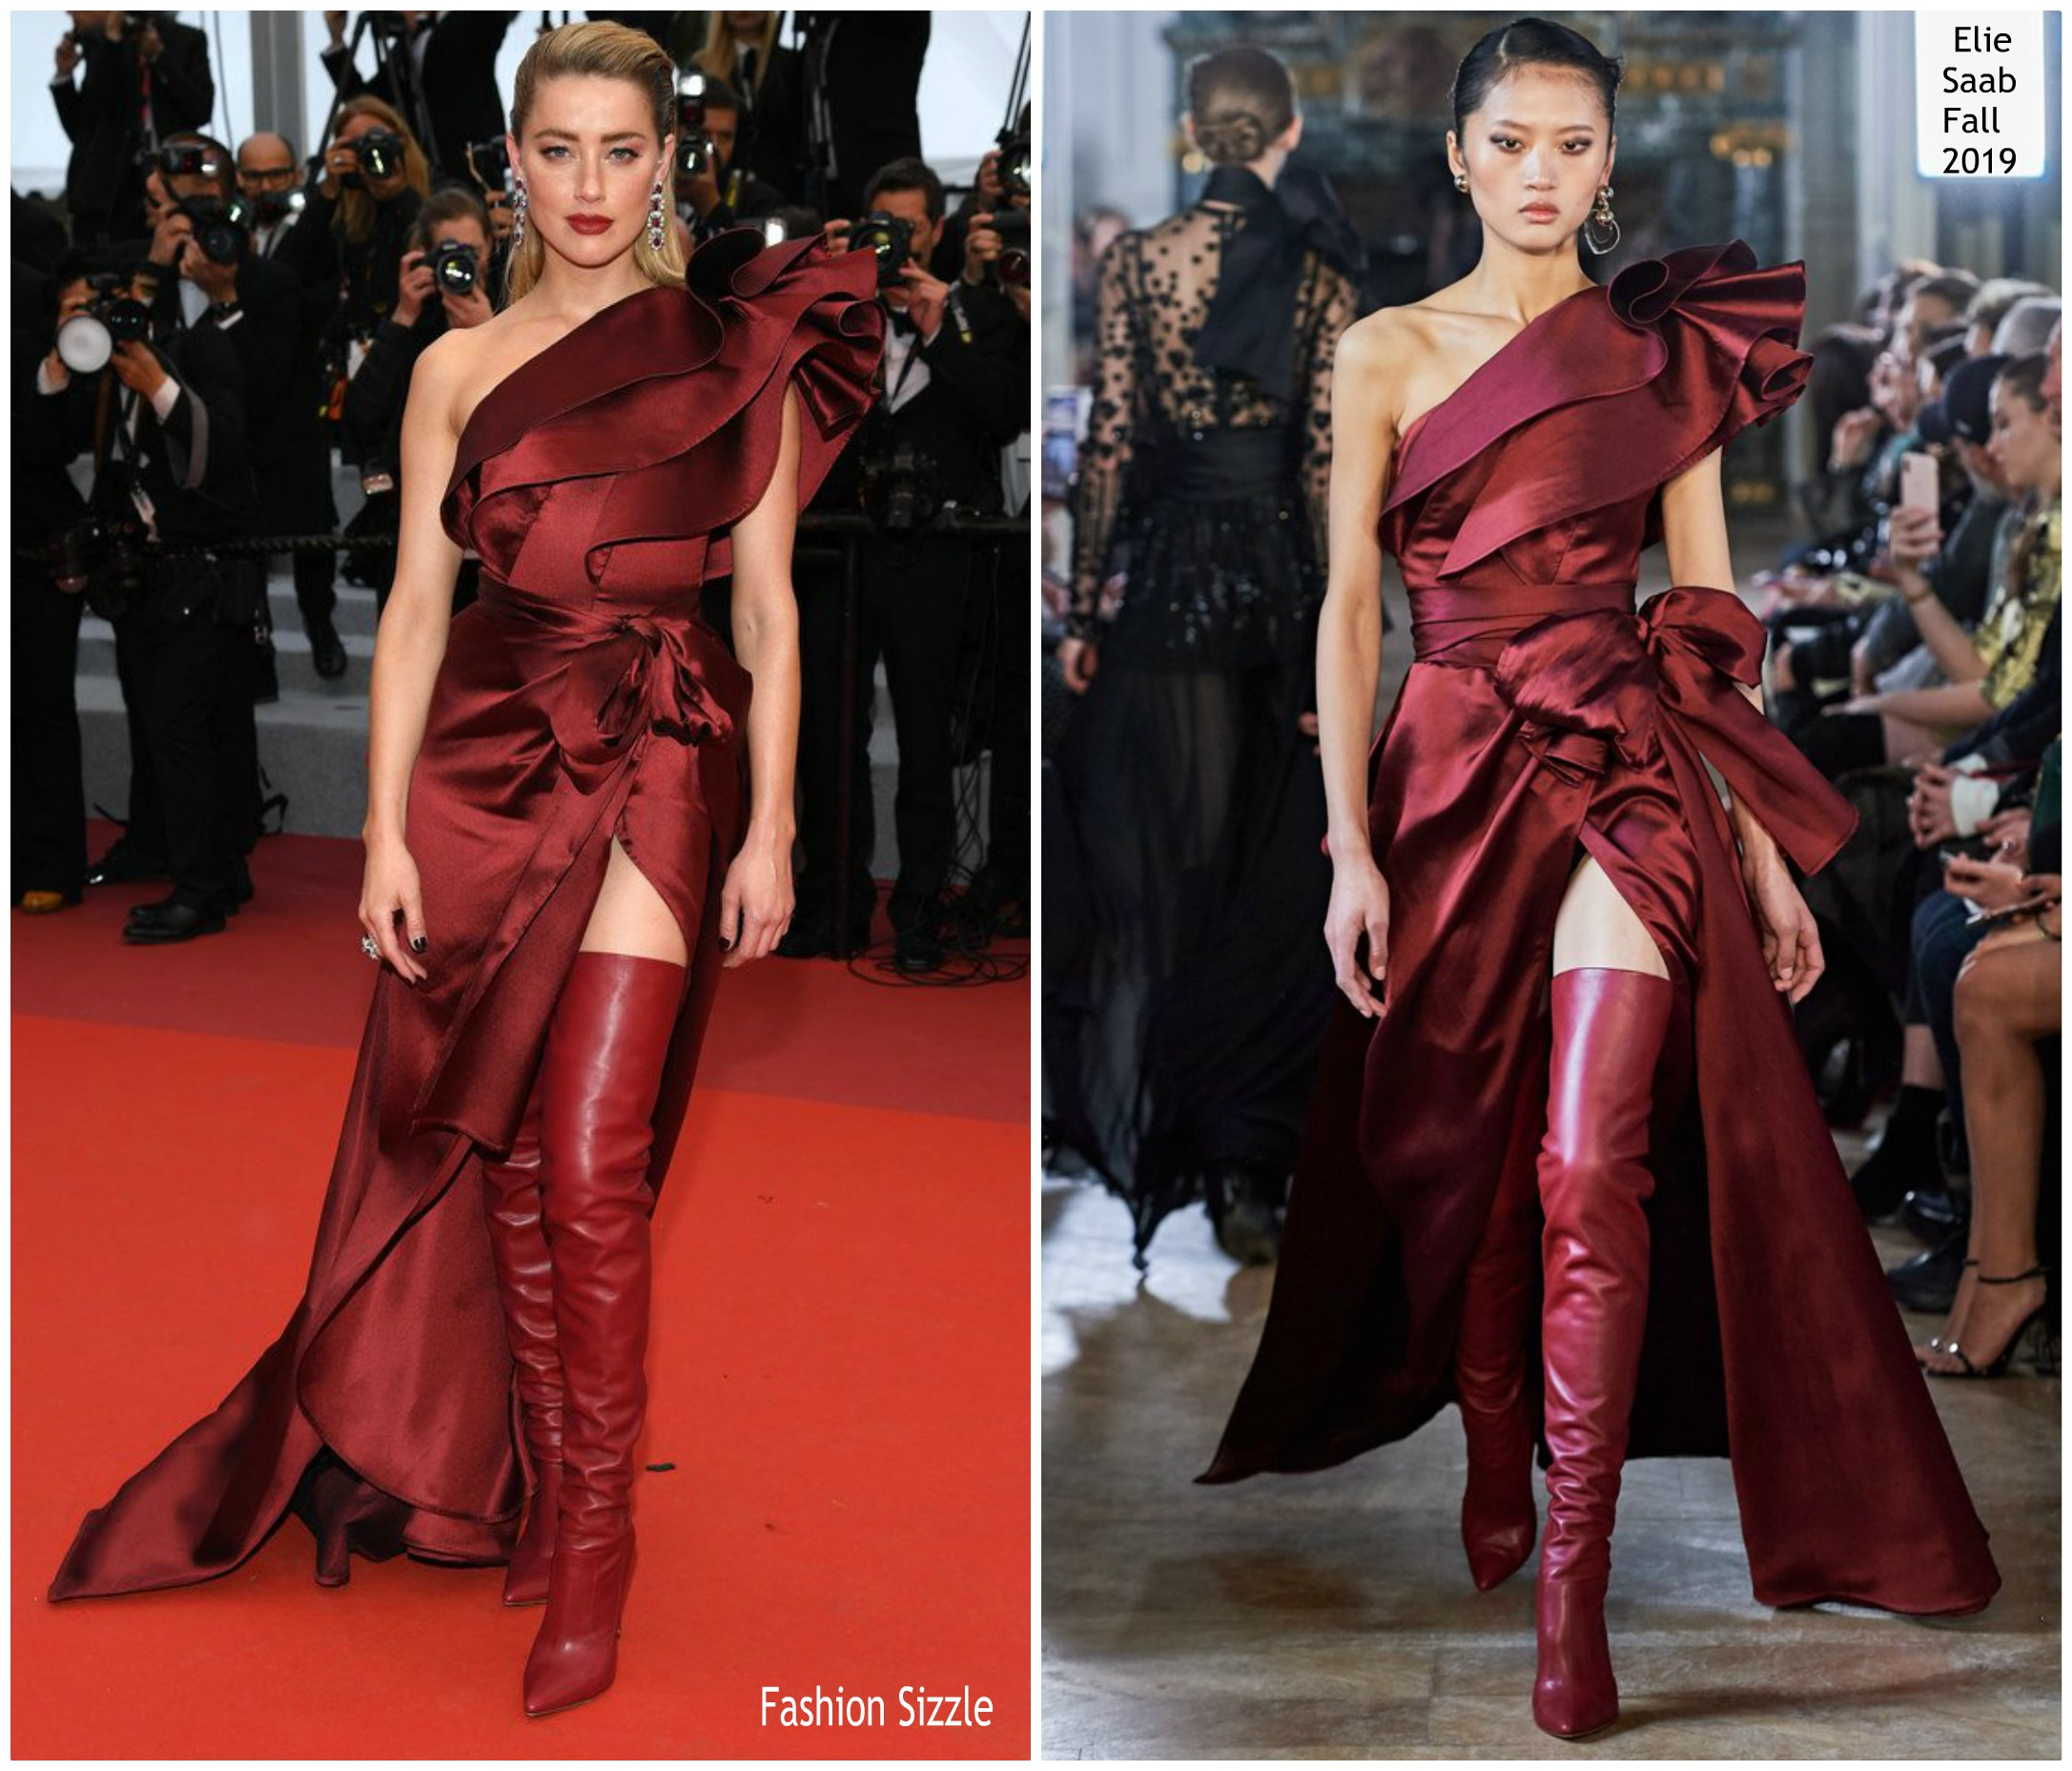 amber-heard-in-elie-saab-pain-and-glory-dolor-y-gloria-douleur-et-glorie- cannes-film-festival-premiere